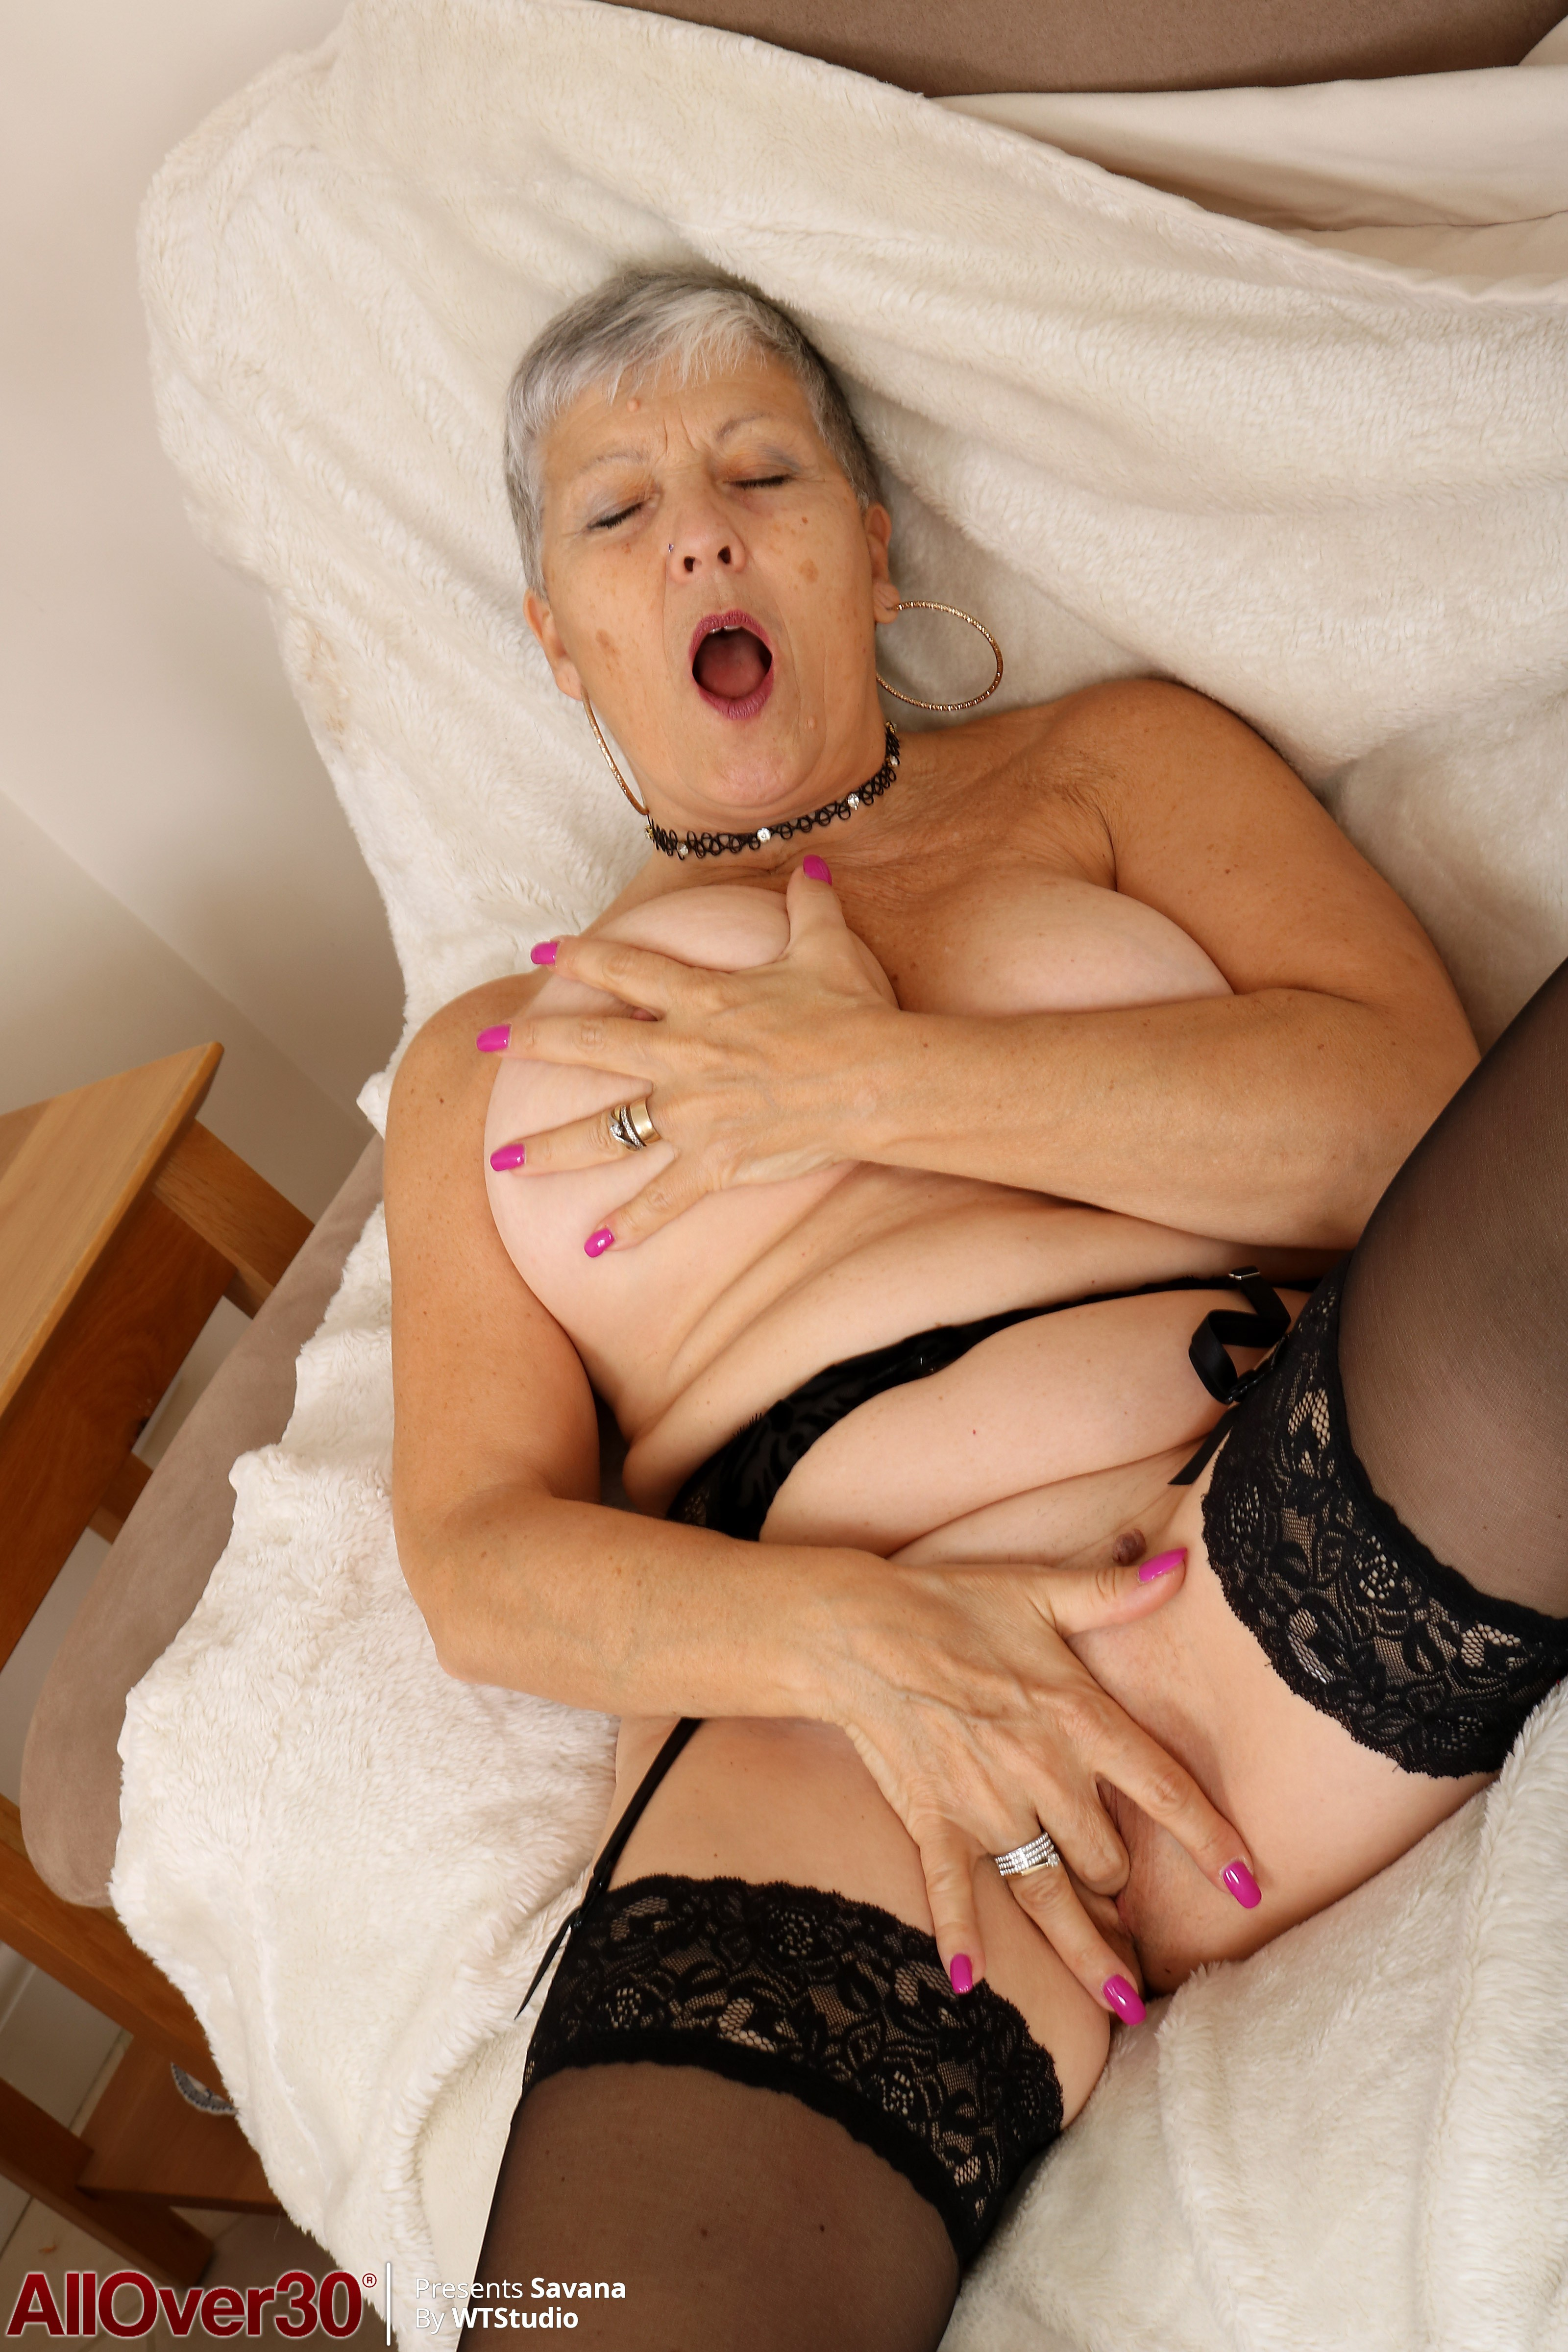 59 Year Old Savana - Exclusive Milf Pictures From Allover30Com-3344